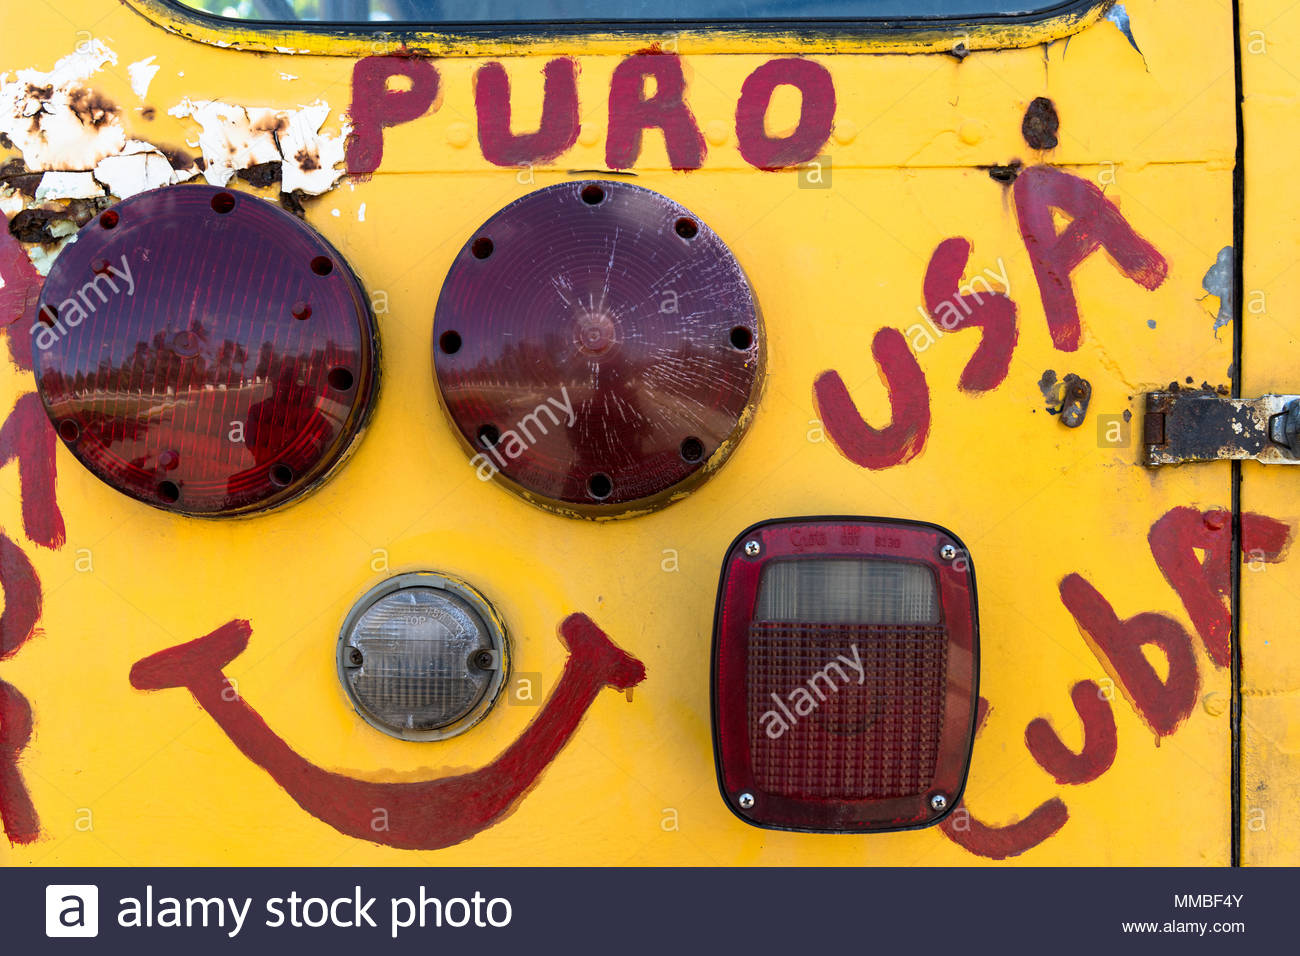 Pastors for Peace truck detail: The vehicle is full of letters promoting the friendship between Cuba and the United States. - Stock Image